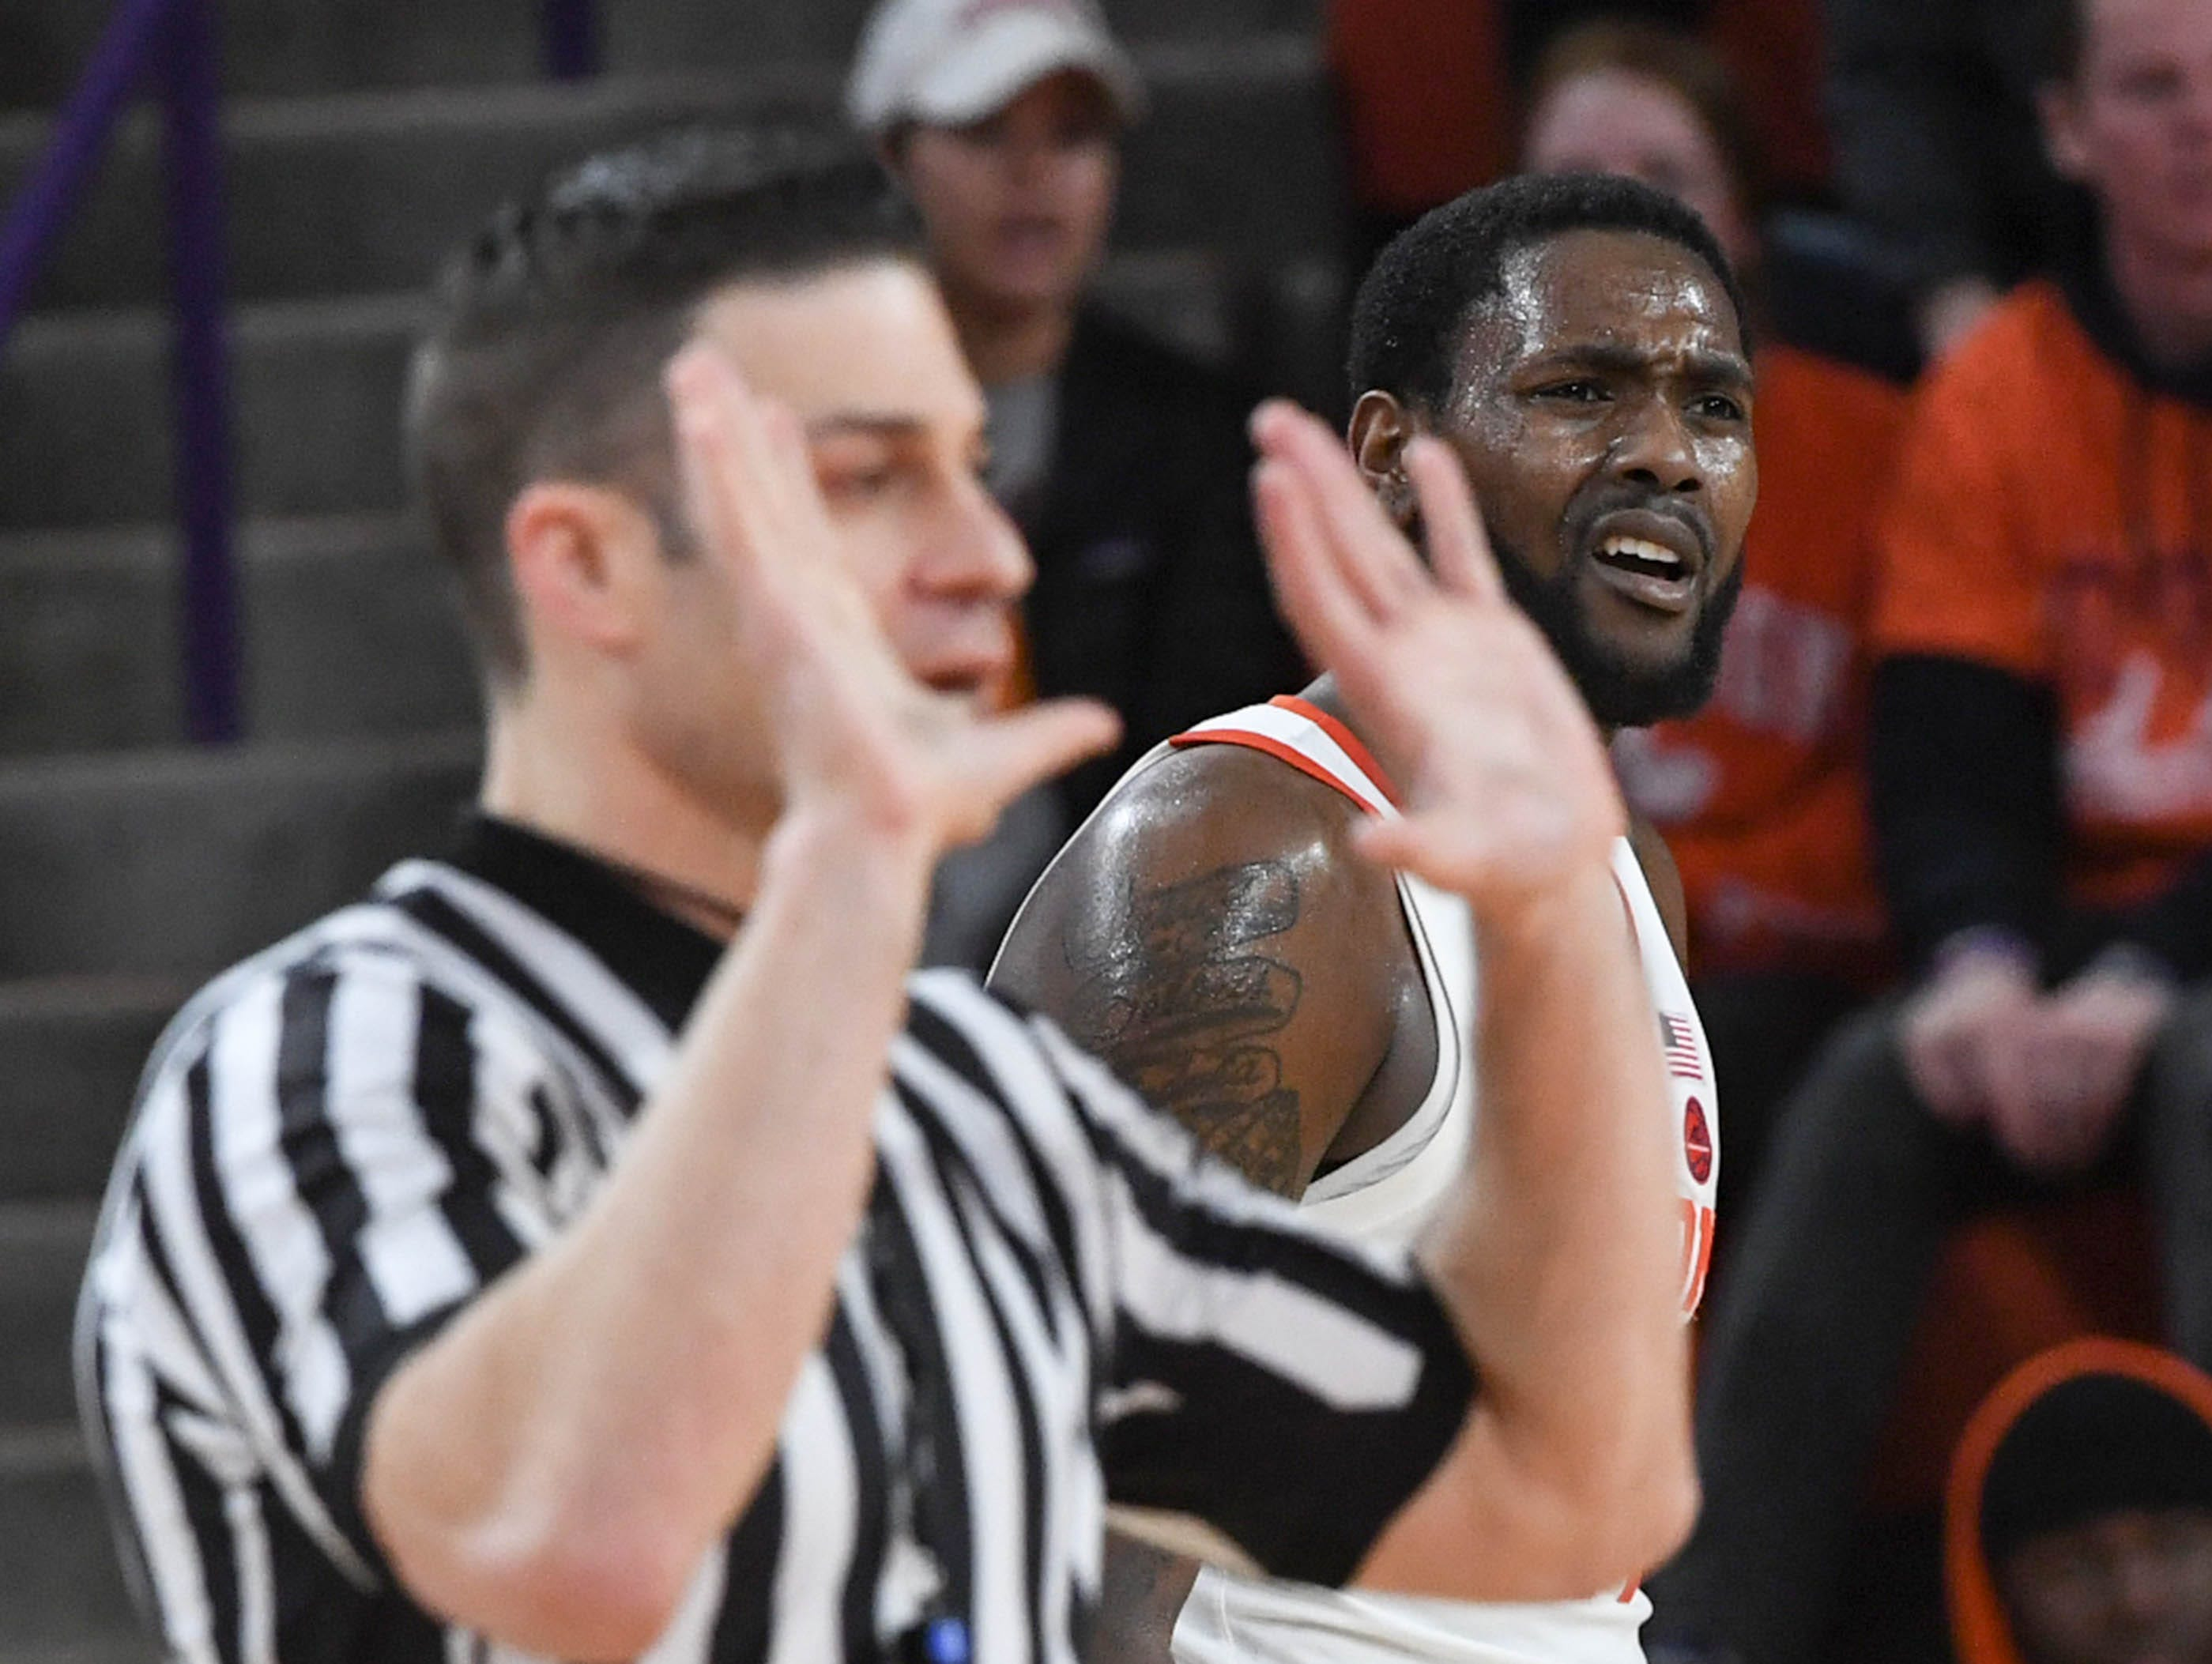 Clemson forward Elijah Thomas (14) appears in disbelief of a call against his team playing Syracuse during the second half in Littlejohn Coliseum in Clemson Saturday, March 9, 2019.